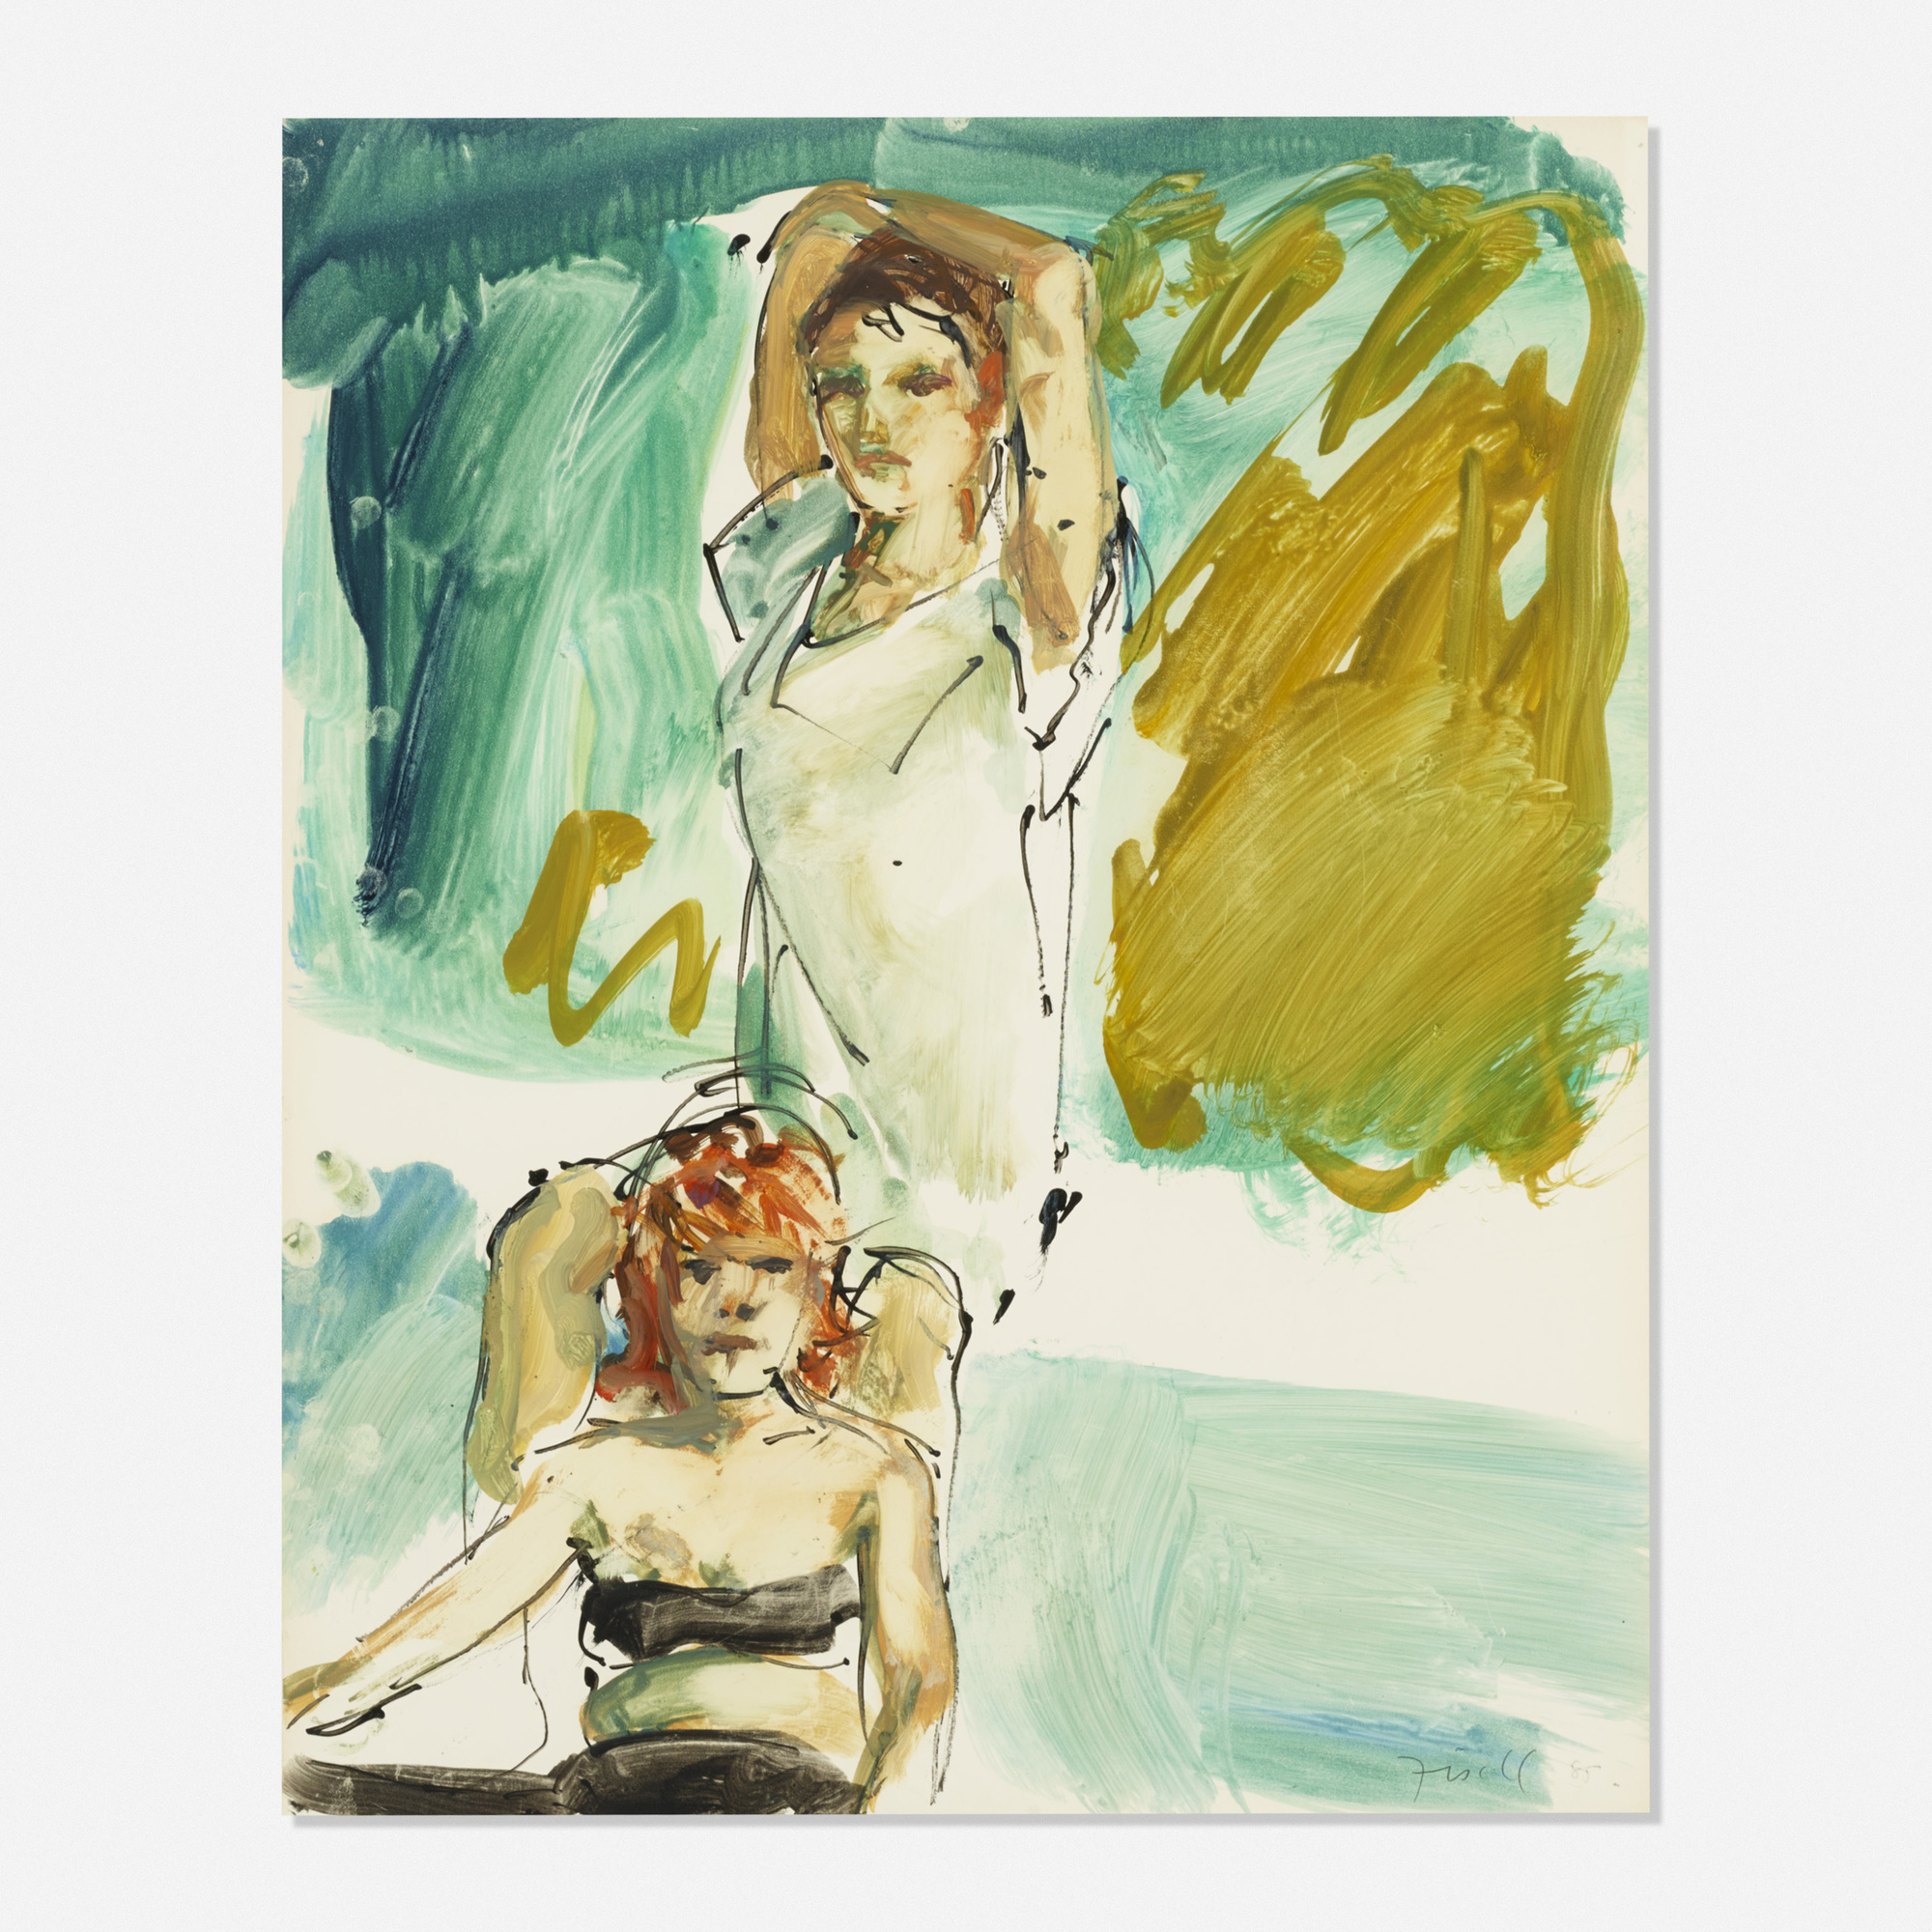 253: Eric Fischl / Untitled (1 of 1)